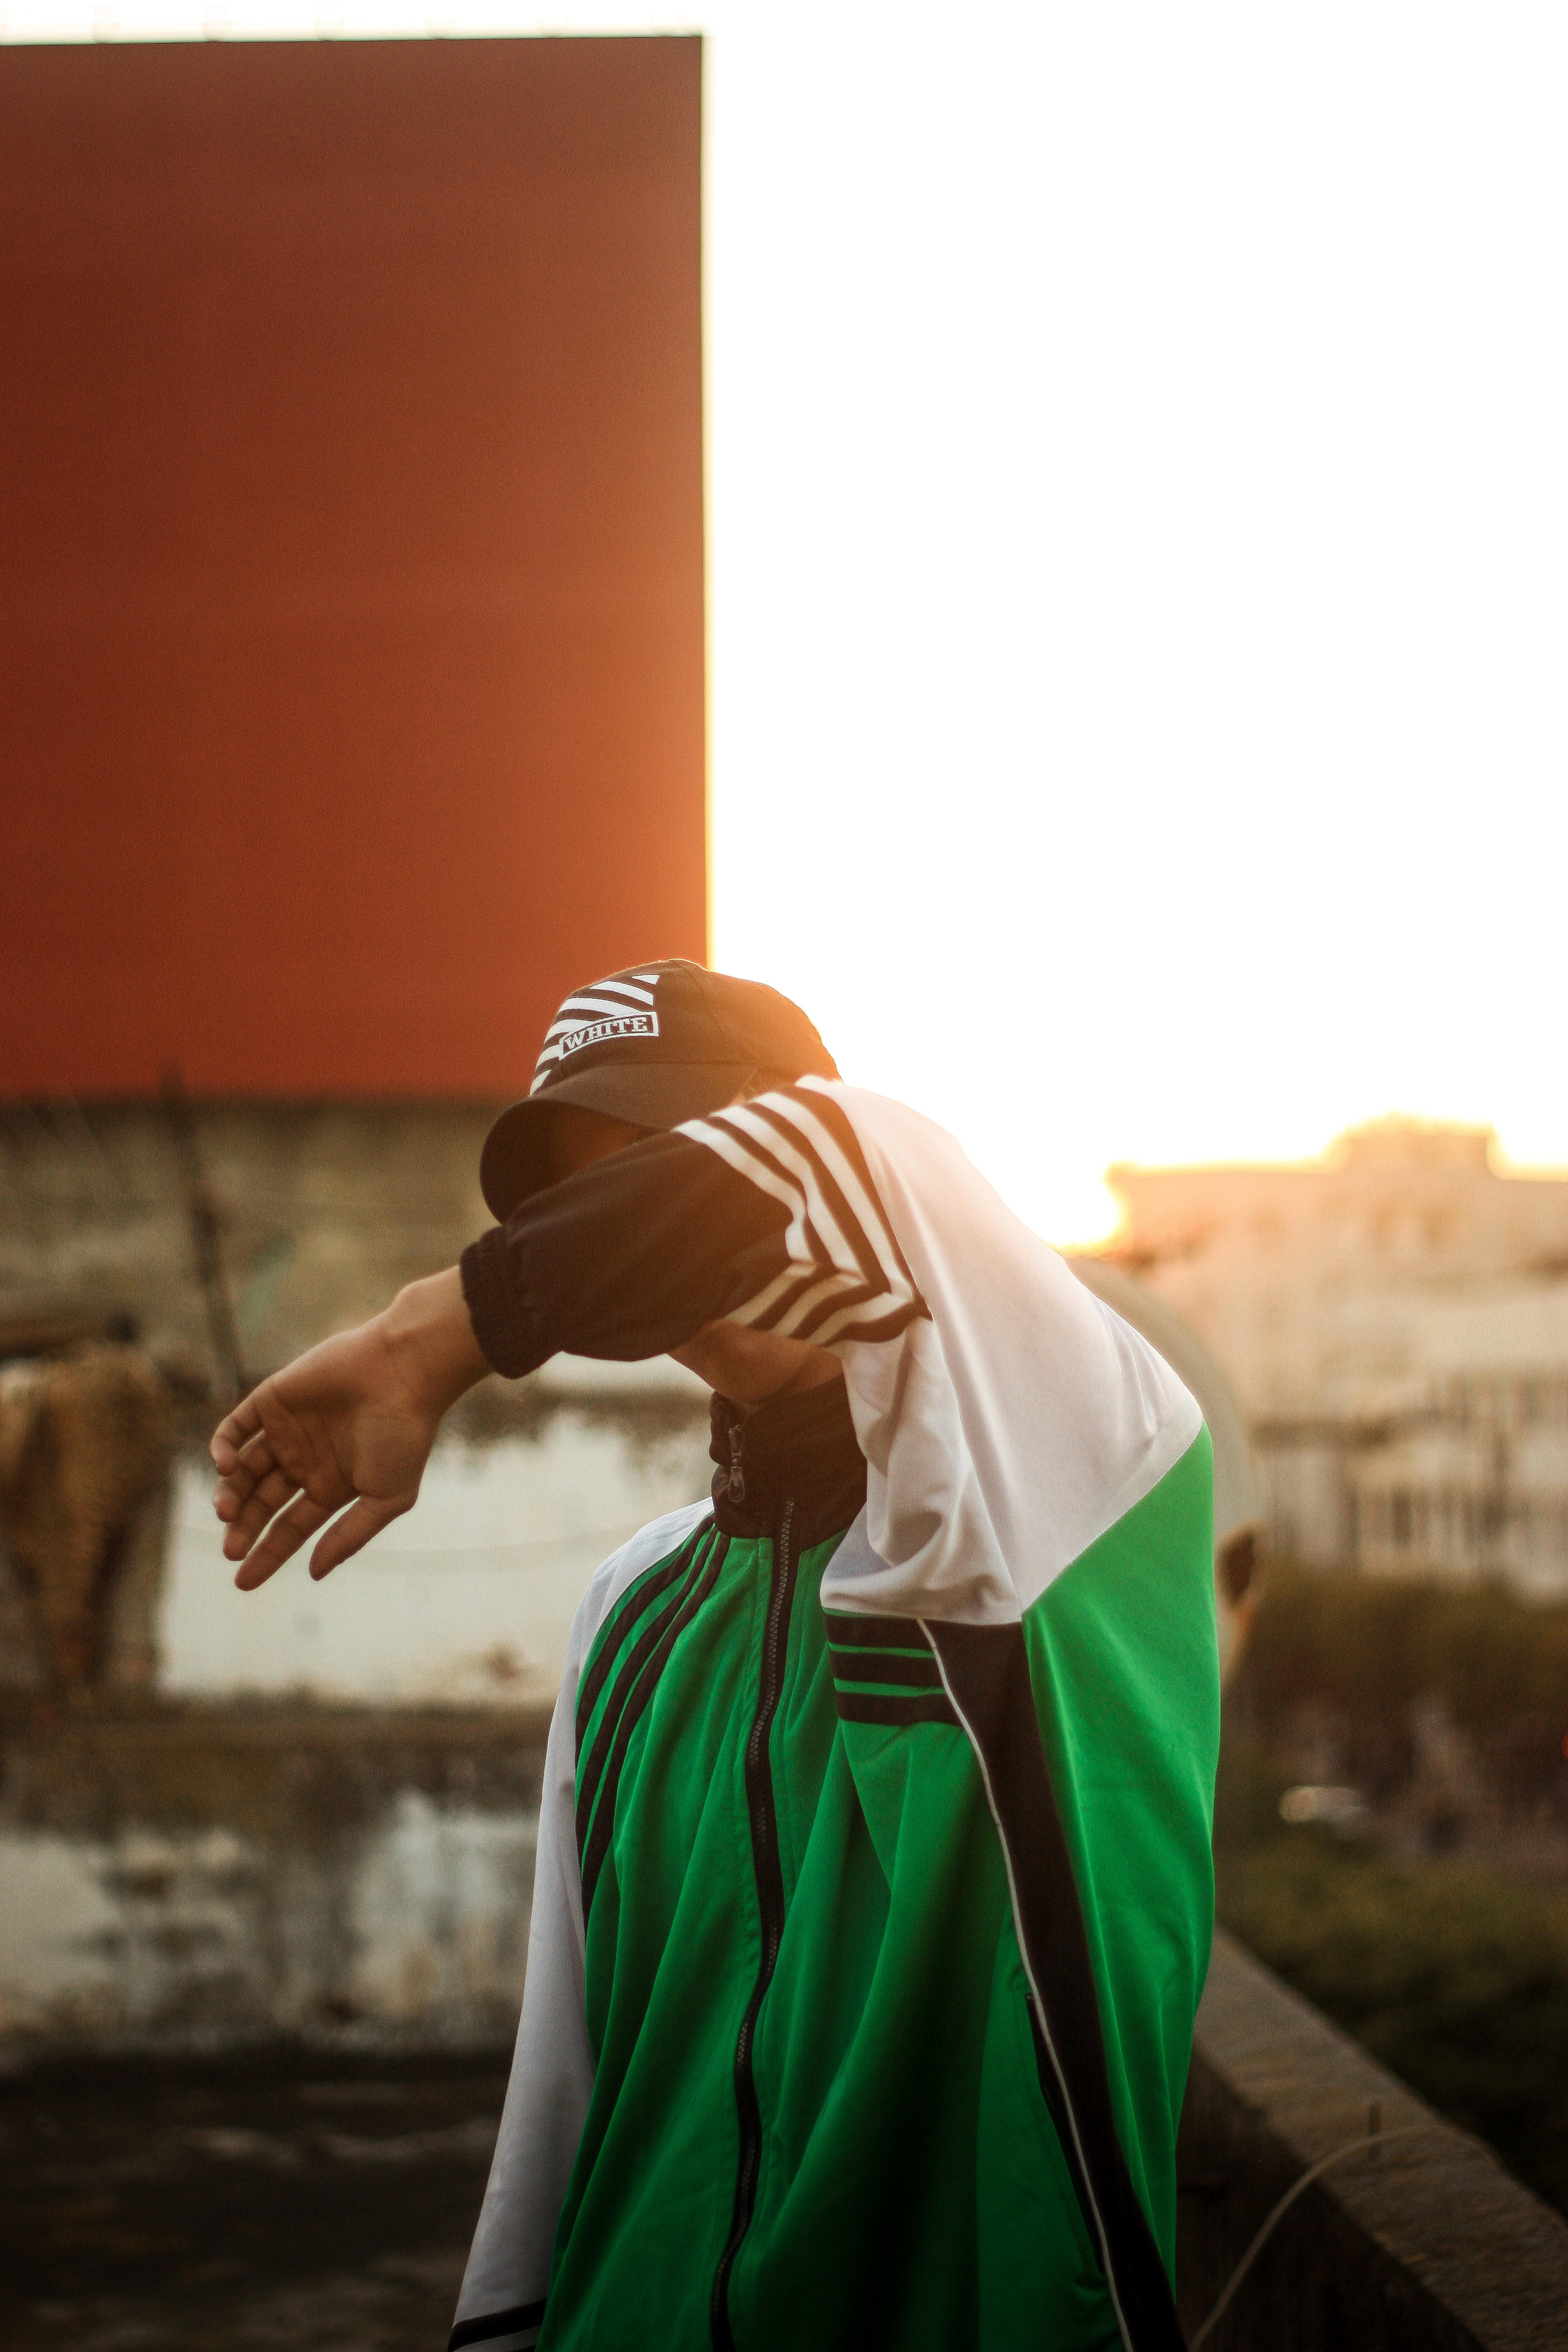 A man in sportswear covering his face